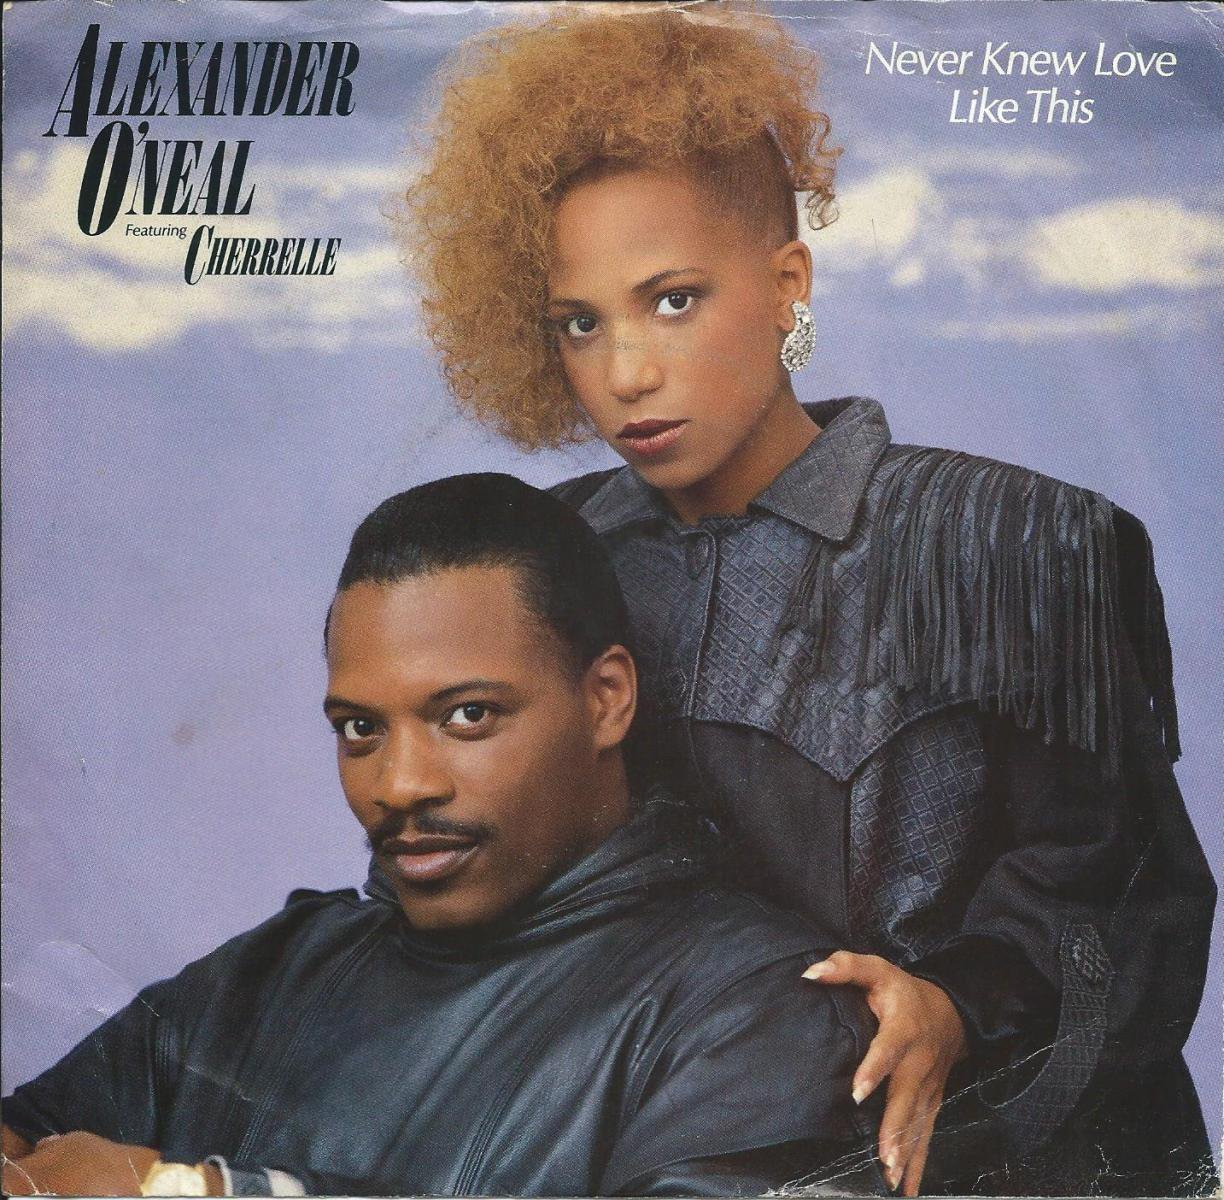 ALEXANDER O'NEAL FEATURING CHERRELLE / NEVER KNEW LOVE LIKE THIS (7